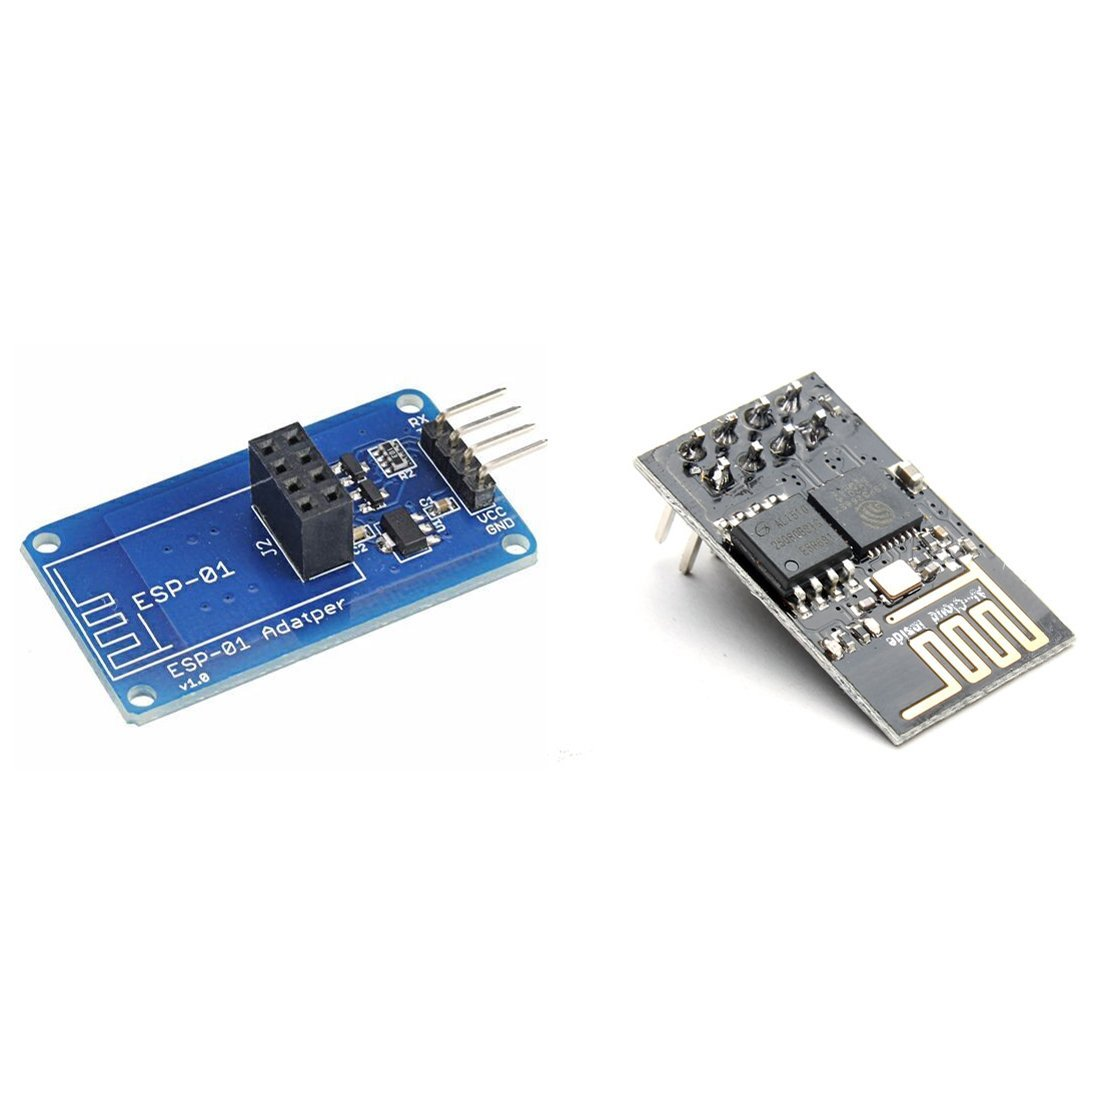 BephaMart ESP8266 ESP-01 WIFI Transceiver Wireless Module + Serial Wi-Fi Wireless Adapter Module For Arduino Shipped and Sold by BephaMart